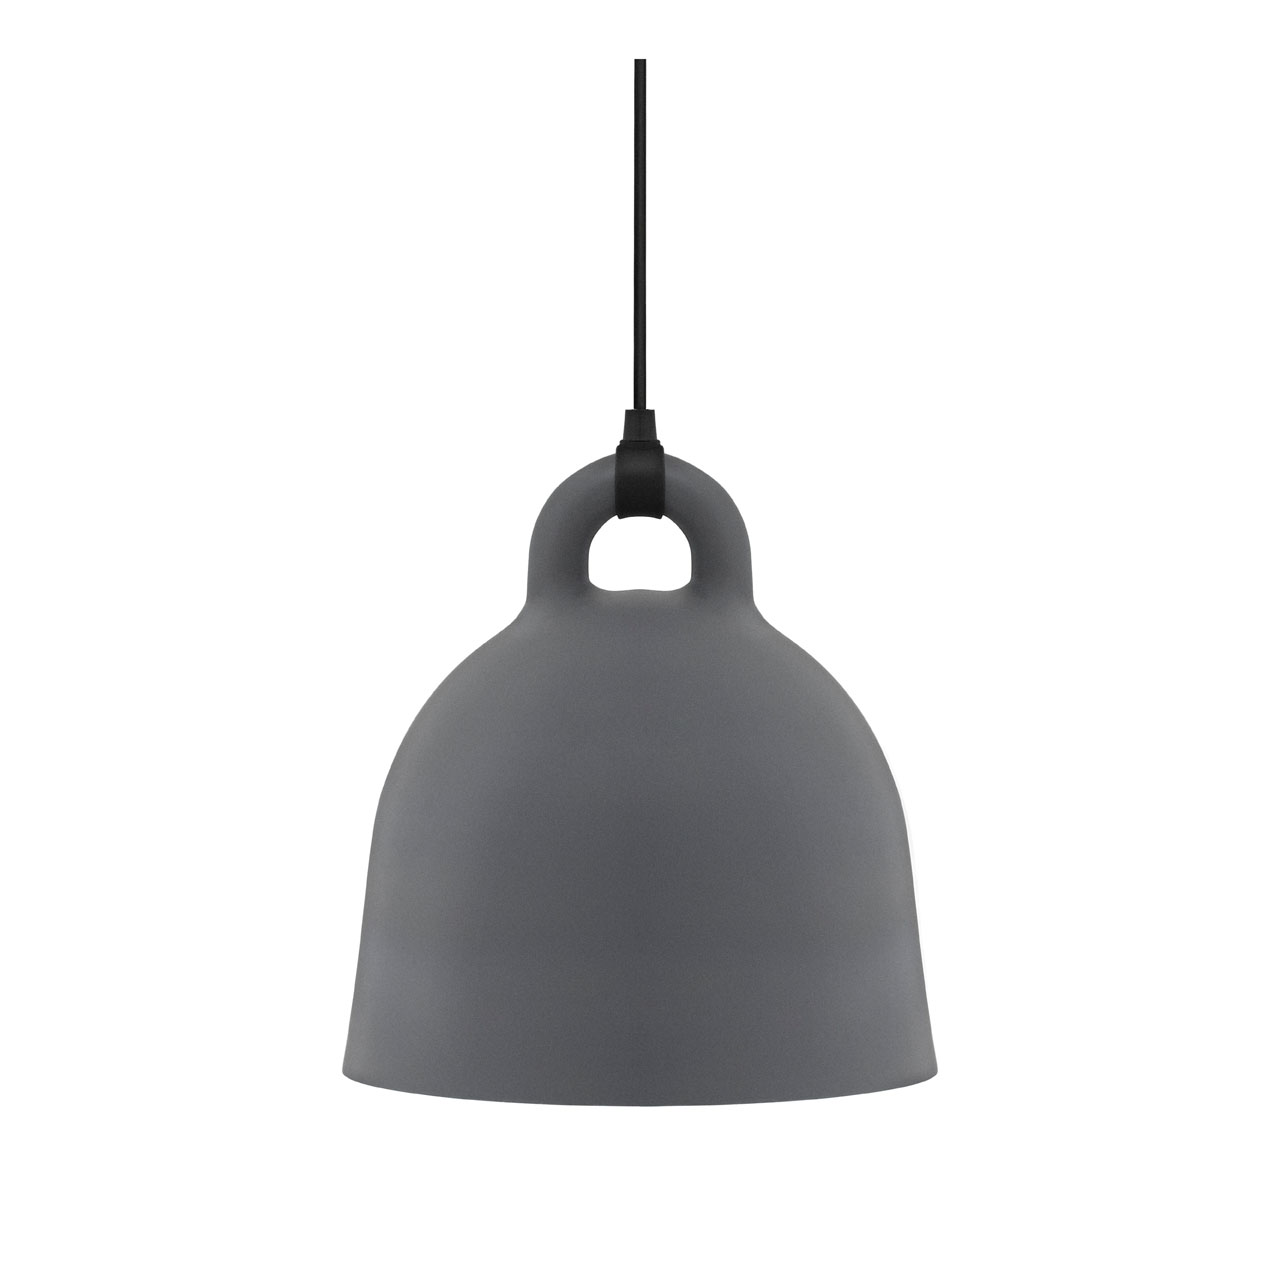 Bell Lamp Medium grey von Normann Copenhagen